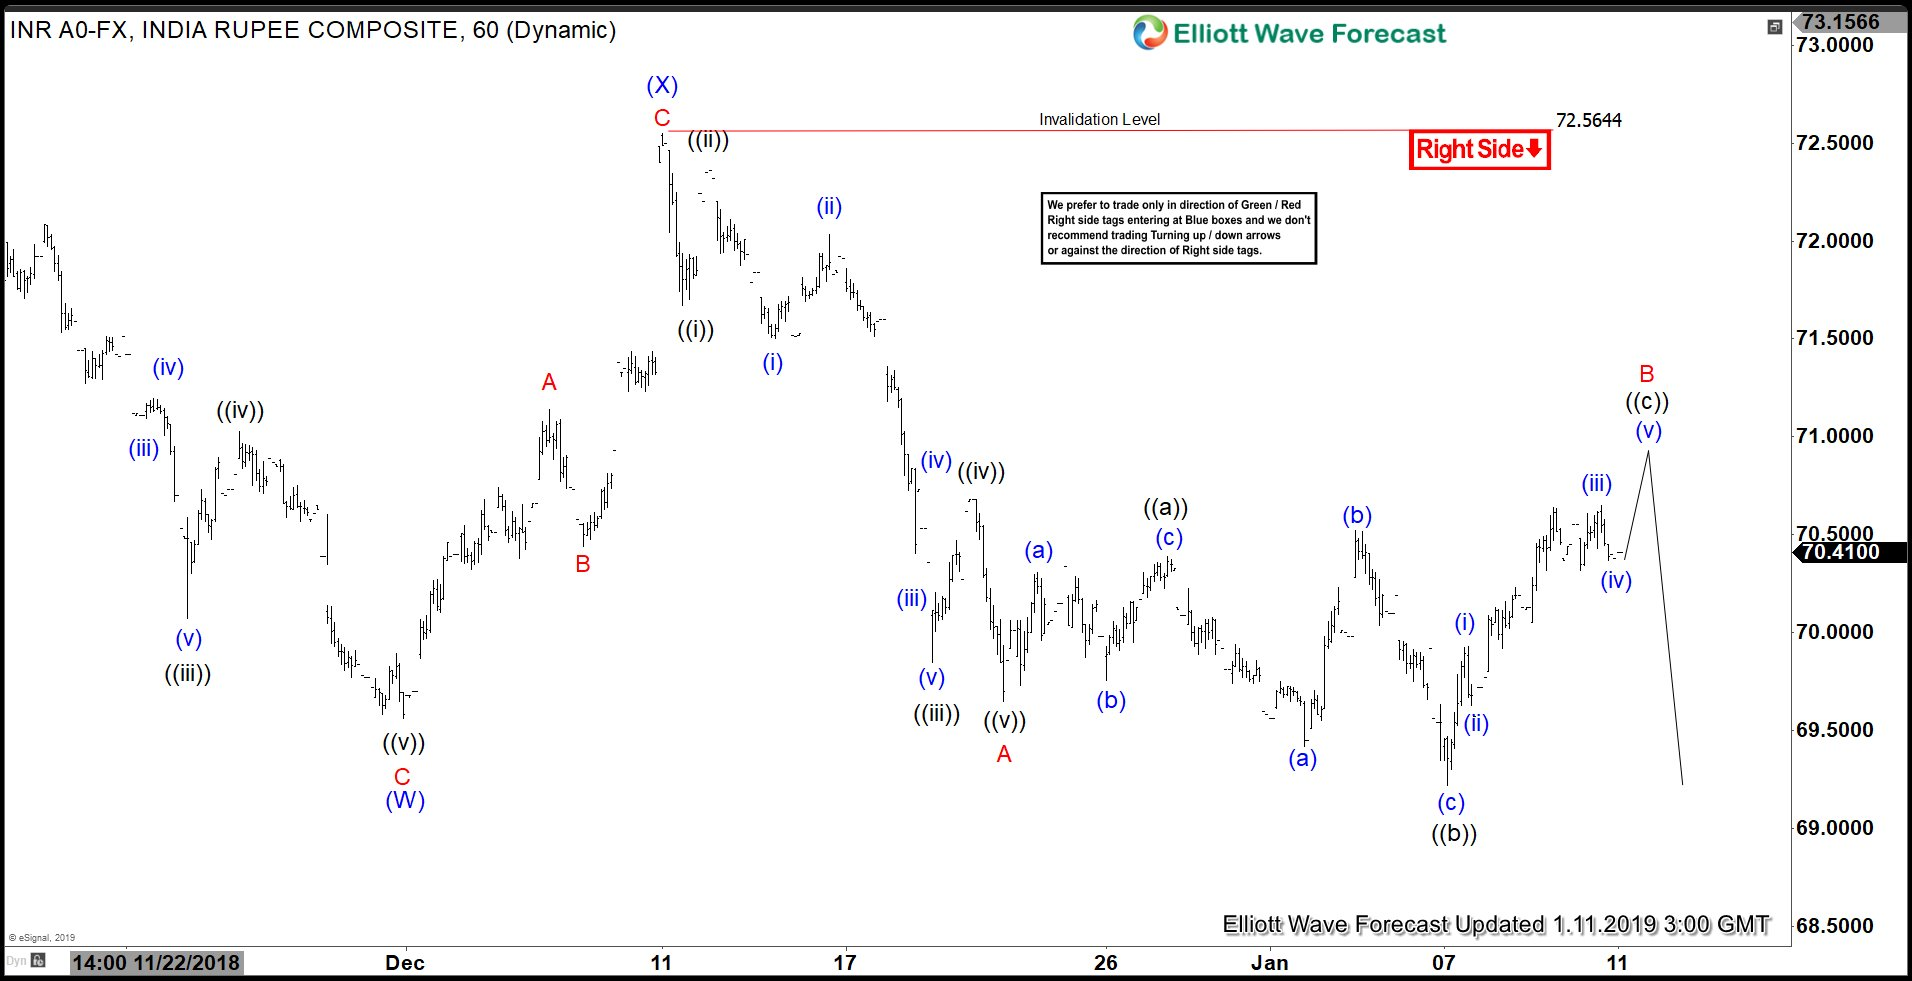 Elliott Wave View favors more downside in Indian Rupee